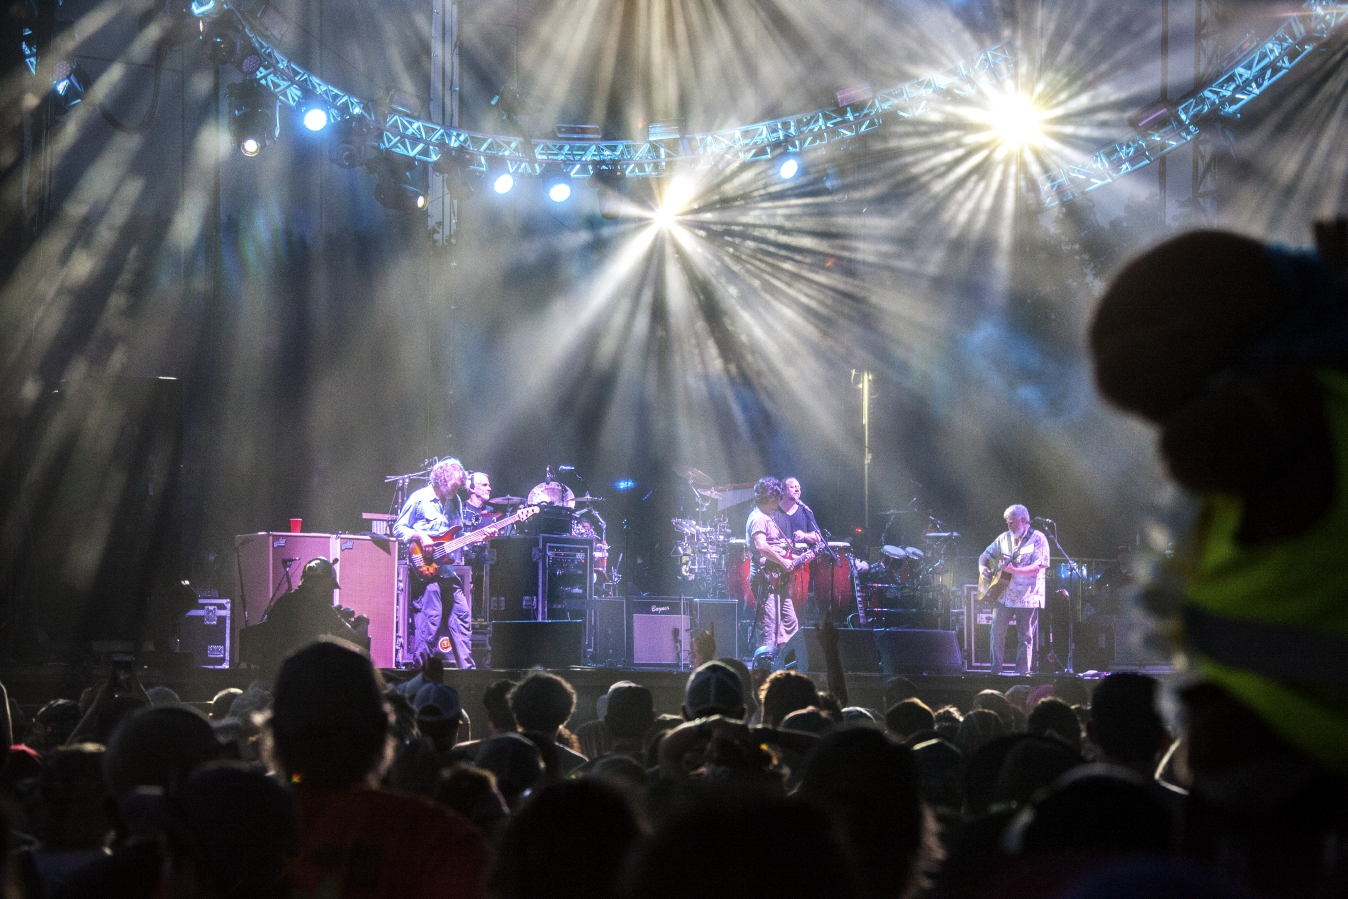 Lockn' Music Festival, held at Oak Ridge Farm, is a four day music festival with an emphasis on stellar music, camping, outdoor activities, regional food, beverages and artisans. Virginia Tourism Corporation, www.Virginia.org